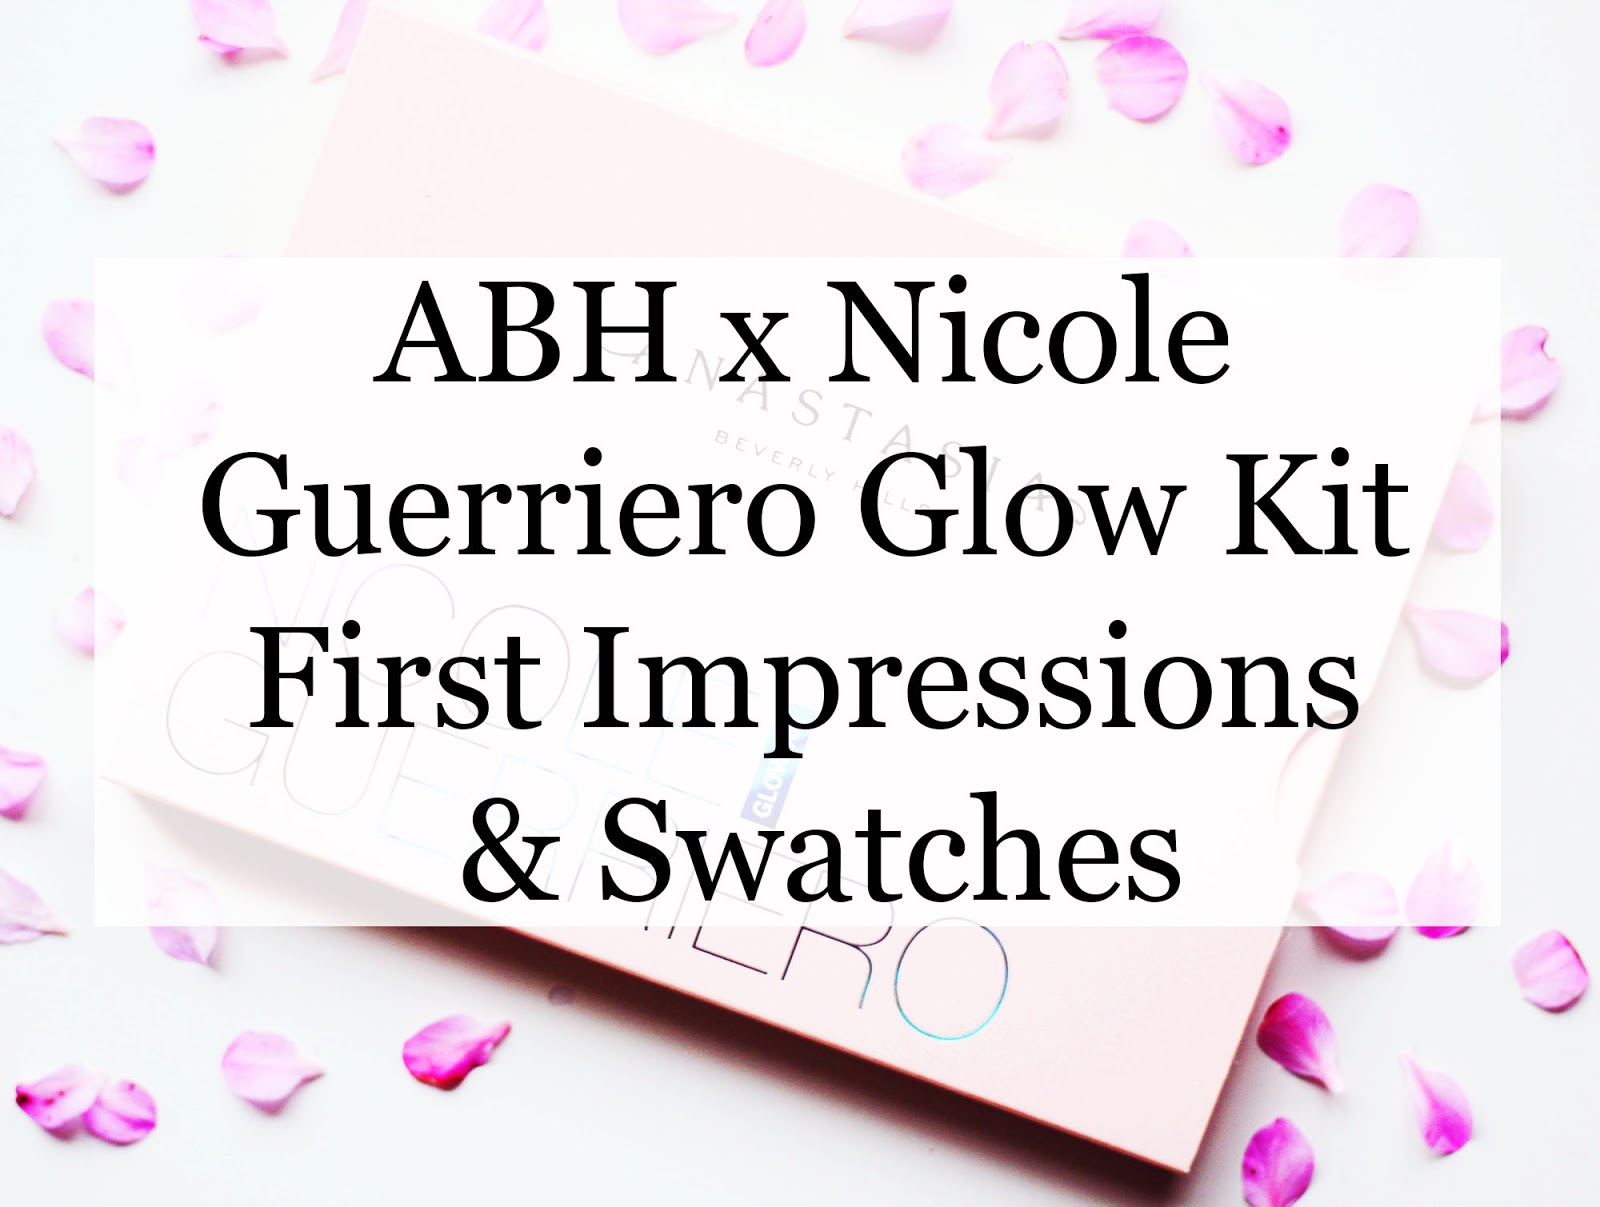 Abh X Nicole Guerriero Glow Kit  First Impressions & Swatches